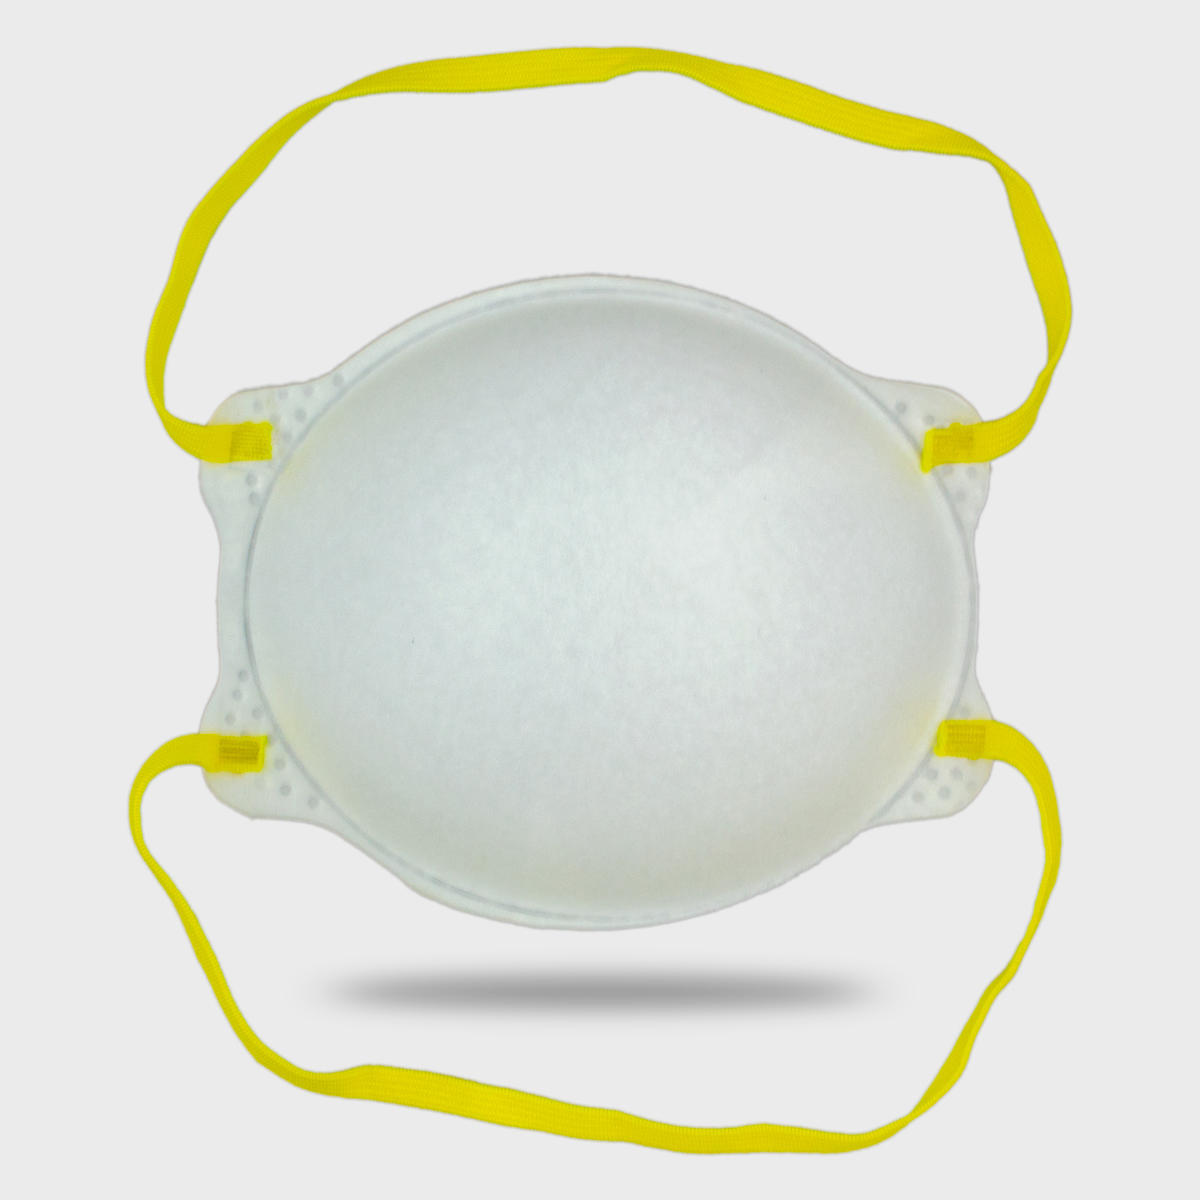 Cup Or Bowl Shape Face Mask With Headloop